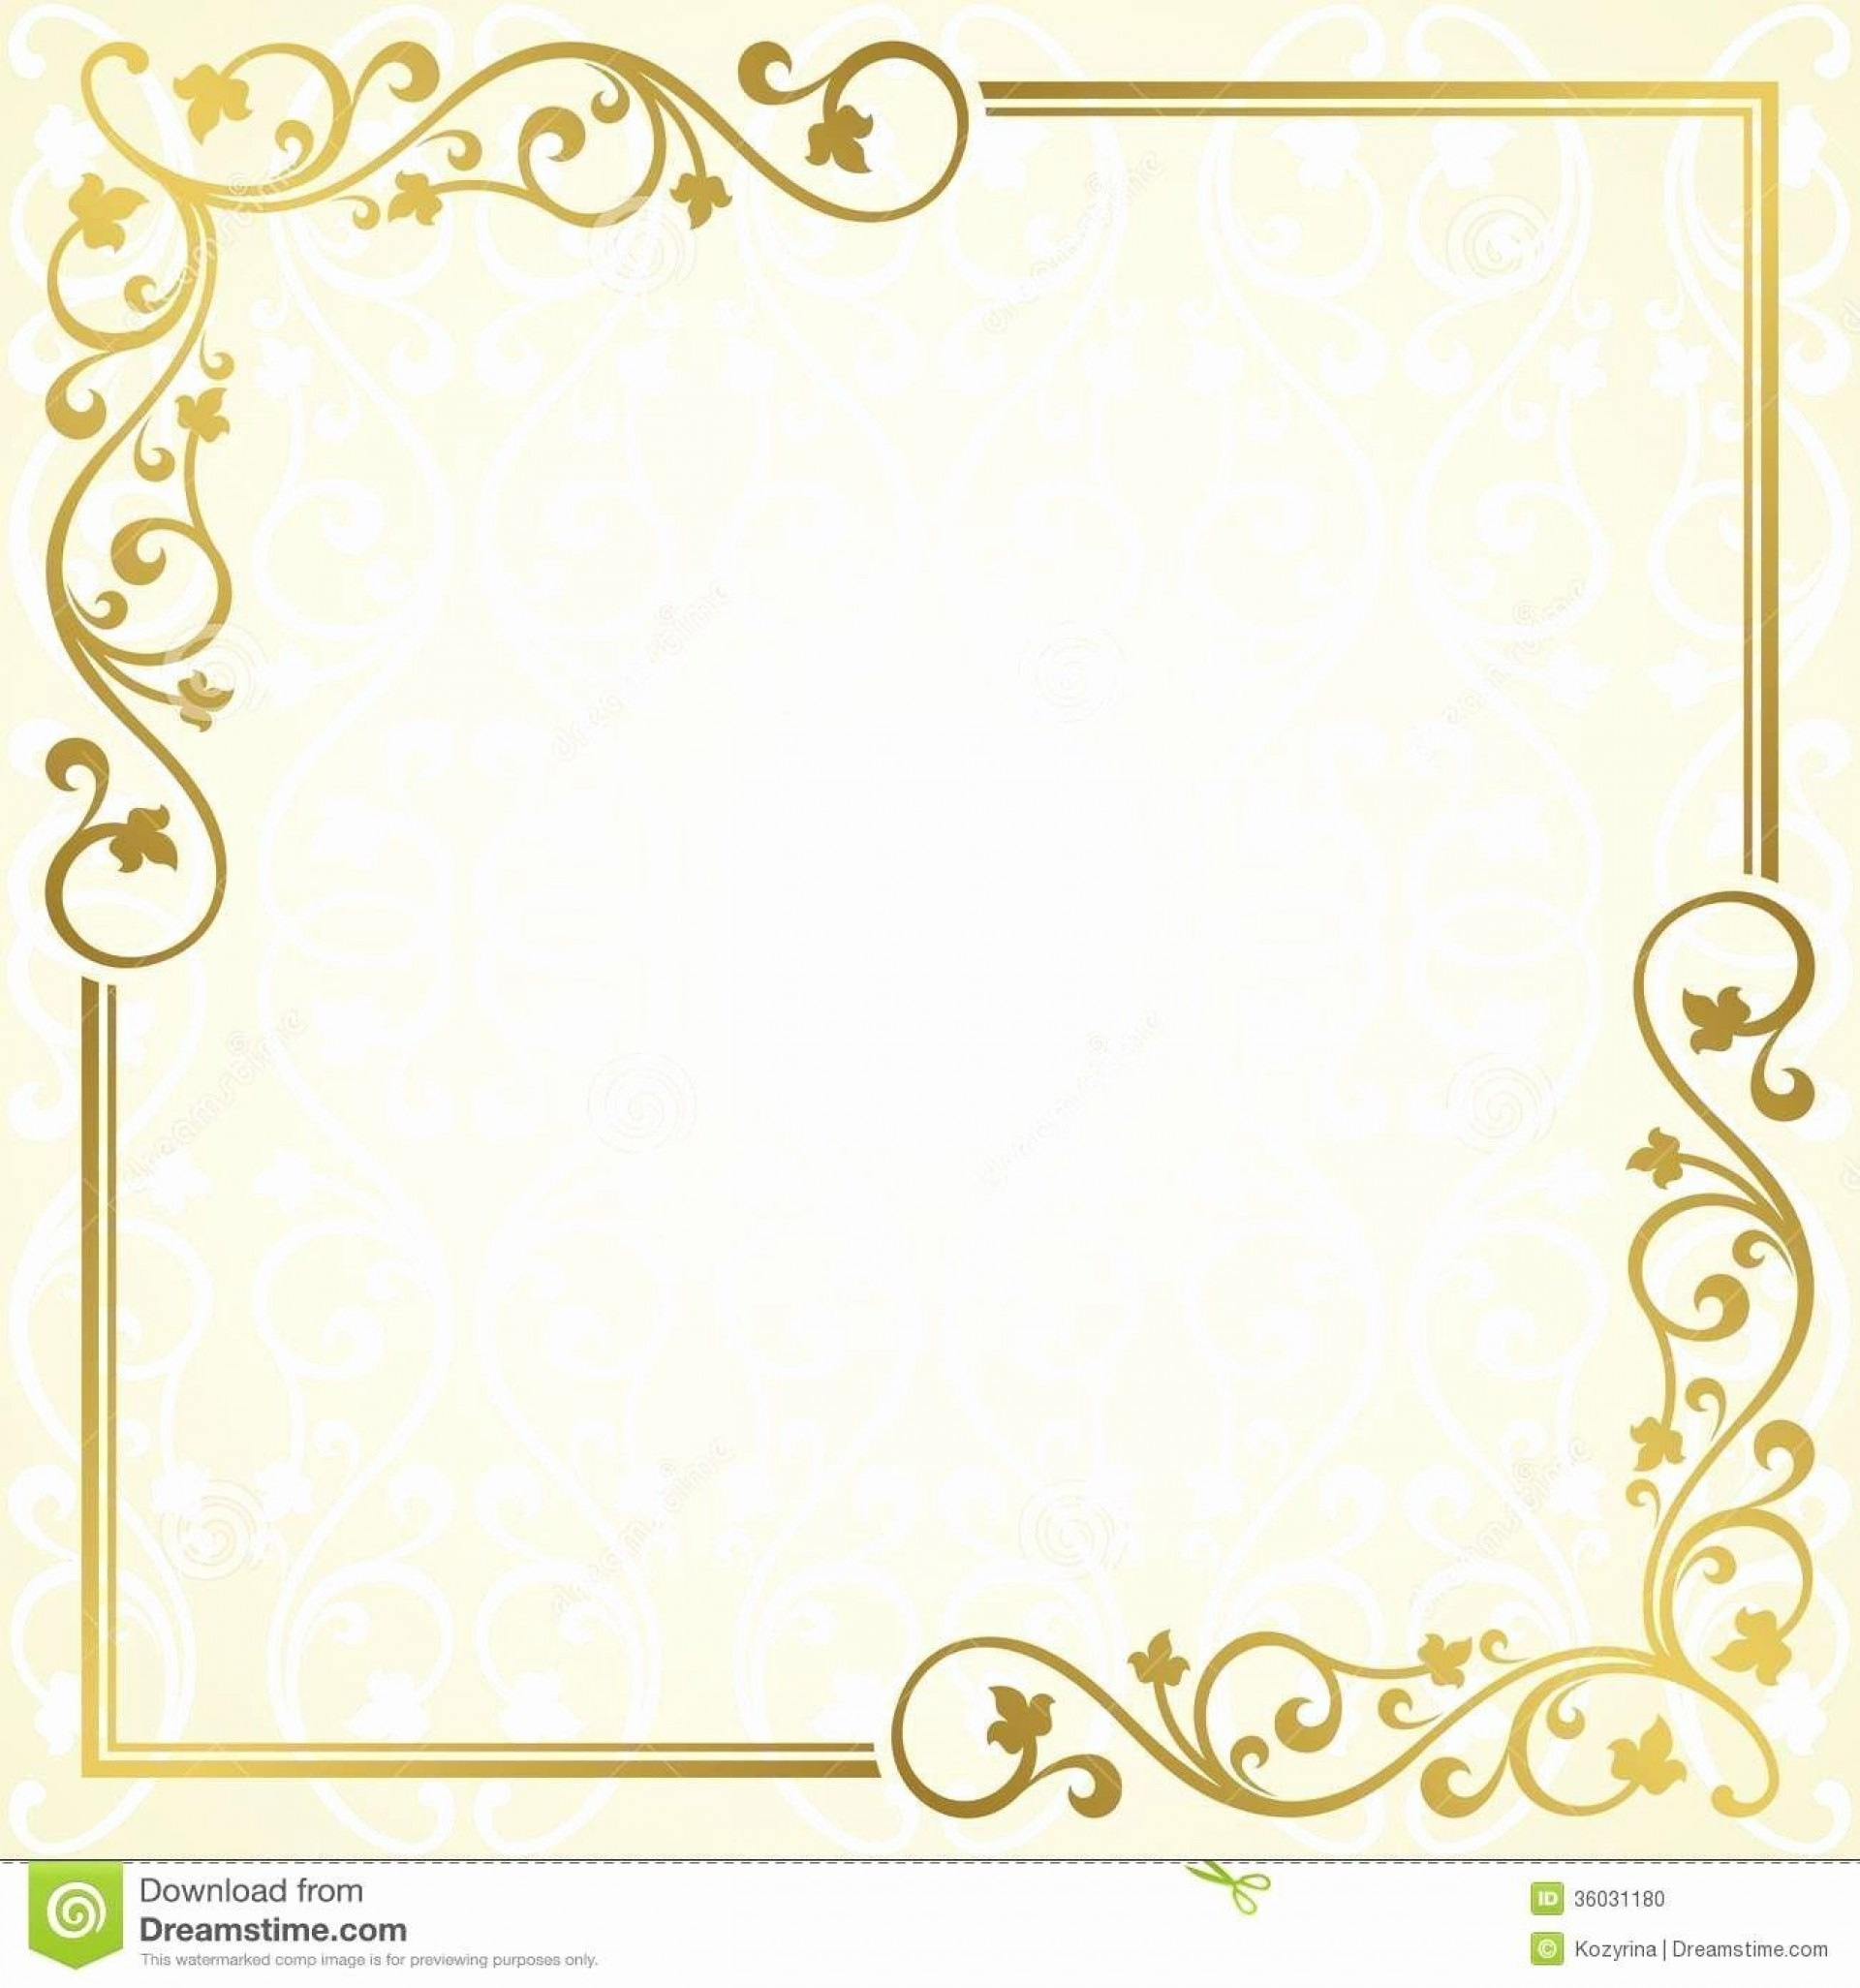 005 Shocking Free Download Invitation Card Format Picture  Birthday Tamil Marriage In Word1920